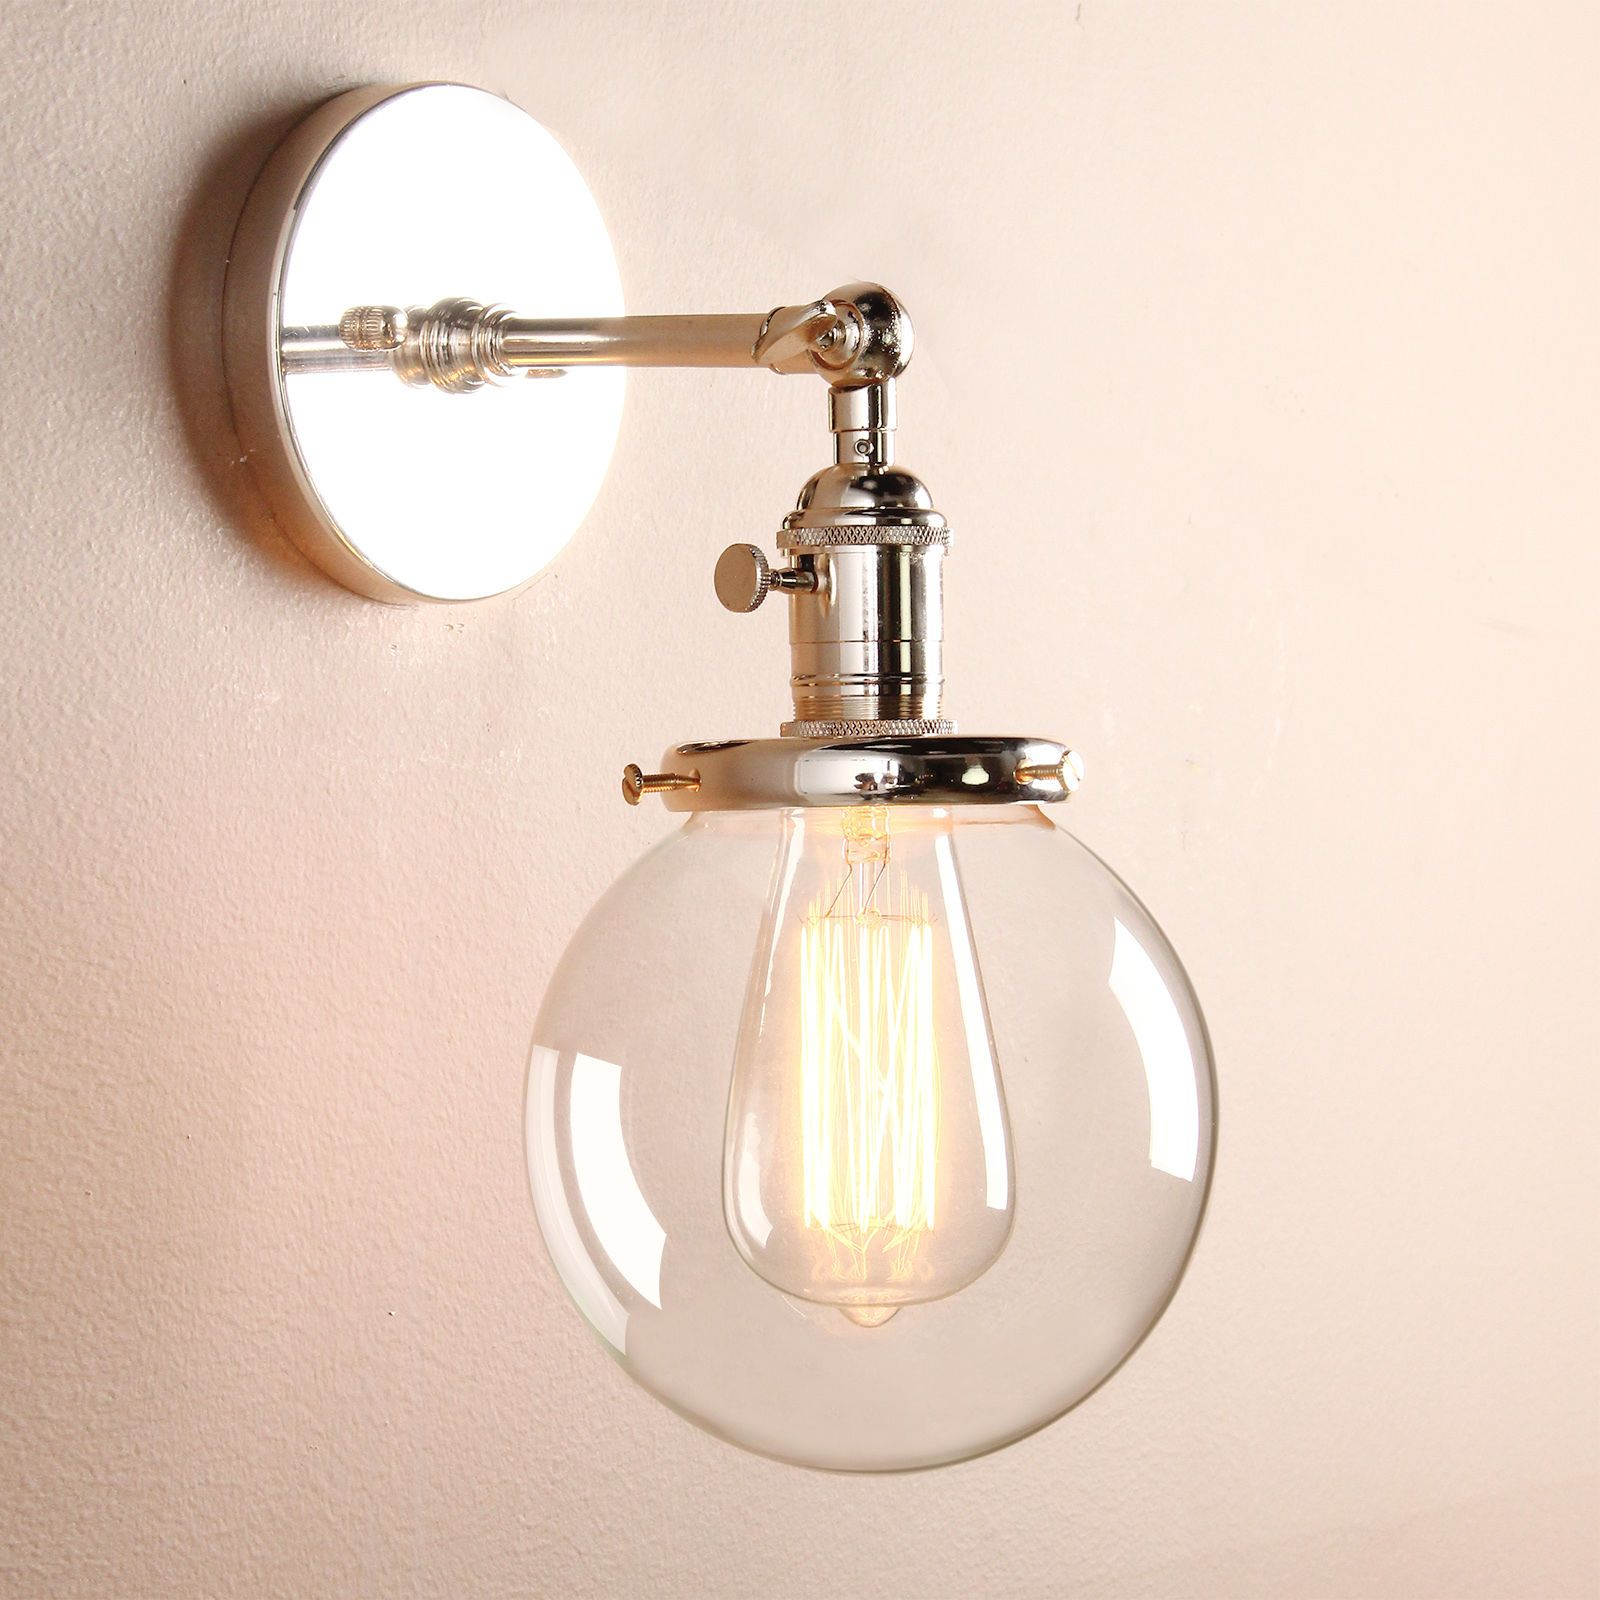 Small Vintage Brushed Sconce Lamp Globe Gl Shade Loft Wall Light In Home Furniture Diy Lighting Lights Ebay